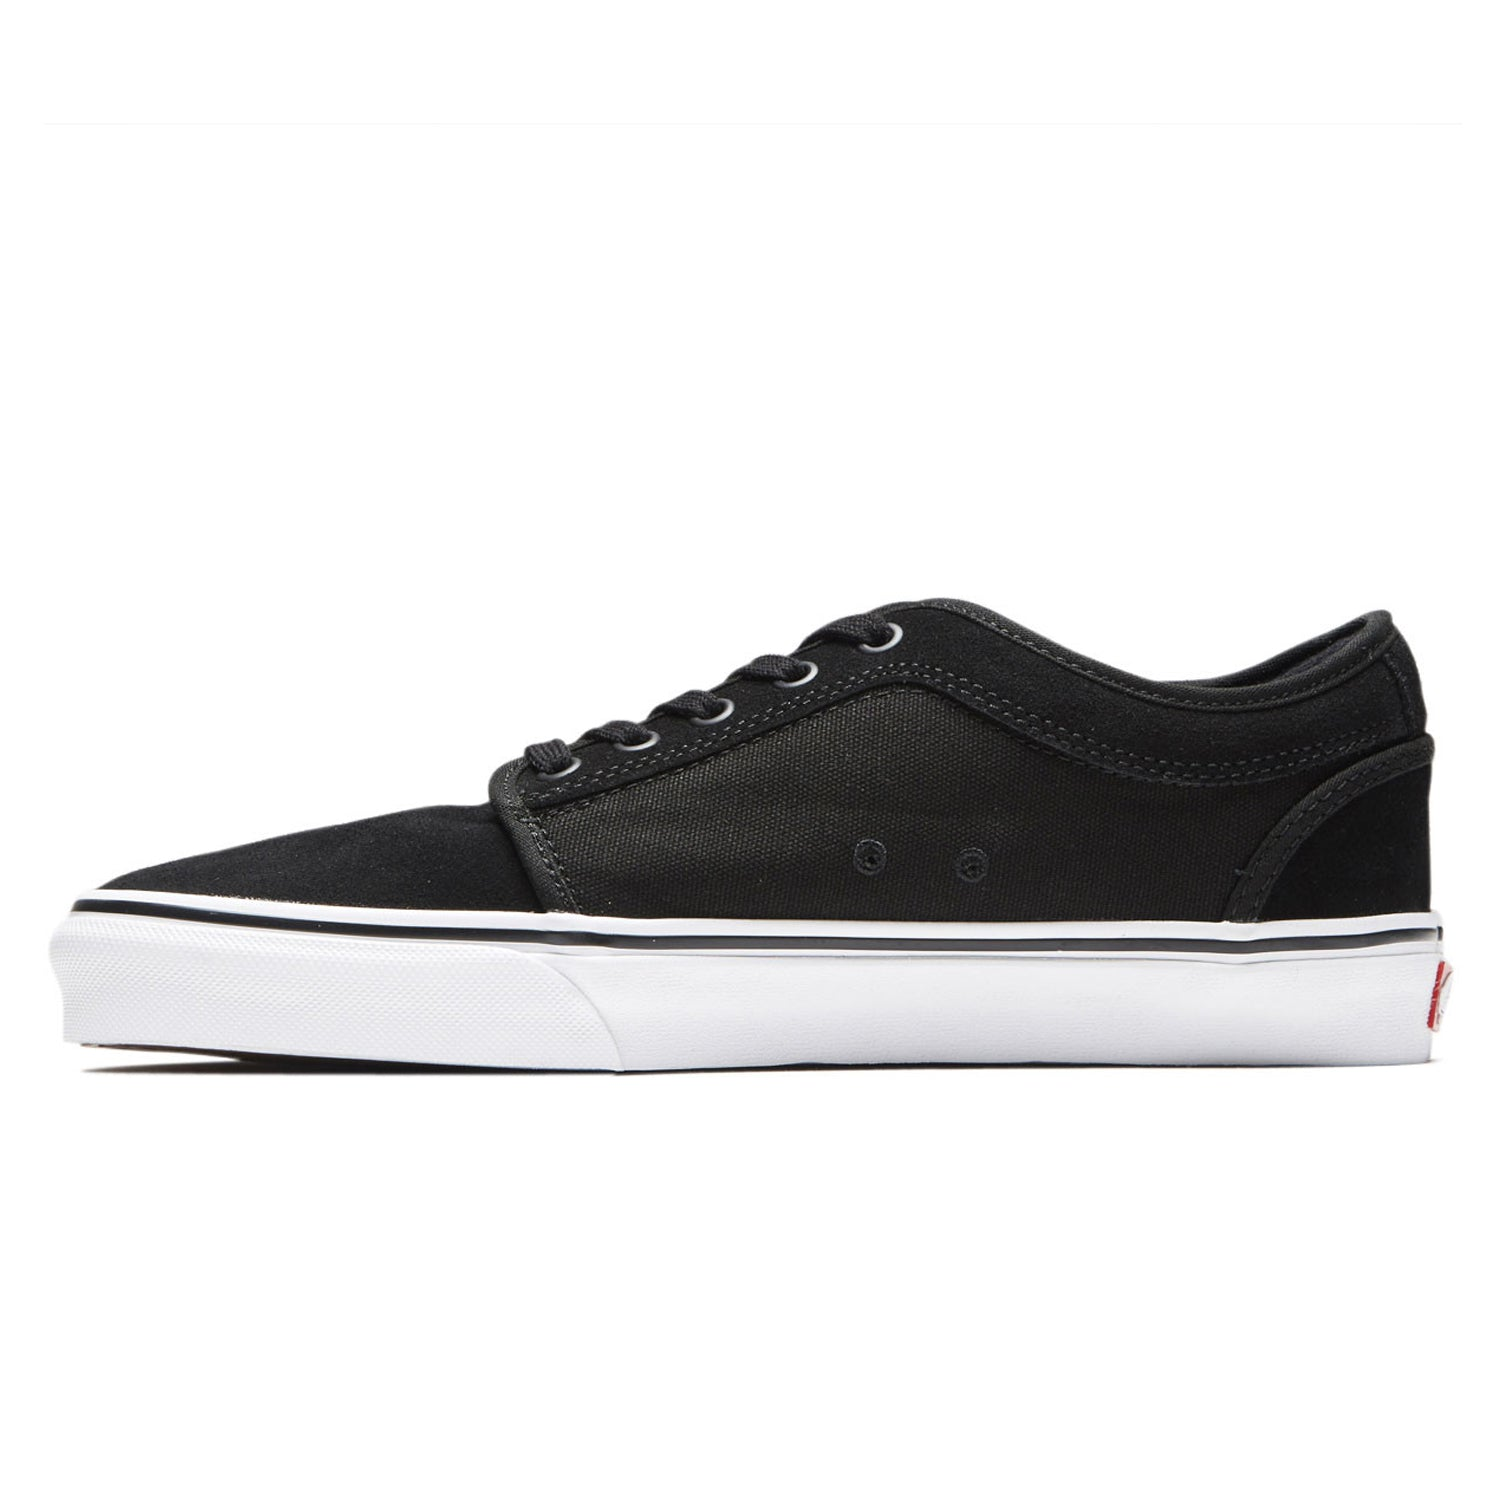 Vans Chukka Low (Suede) Black/True White